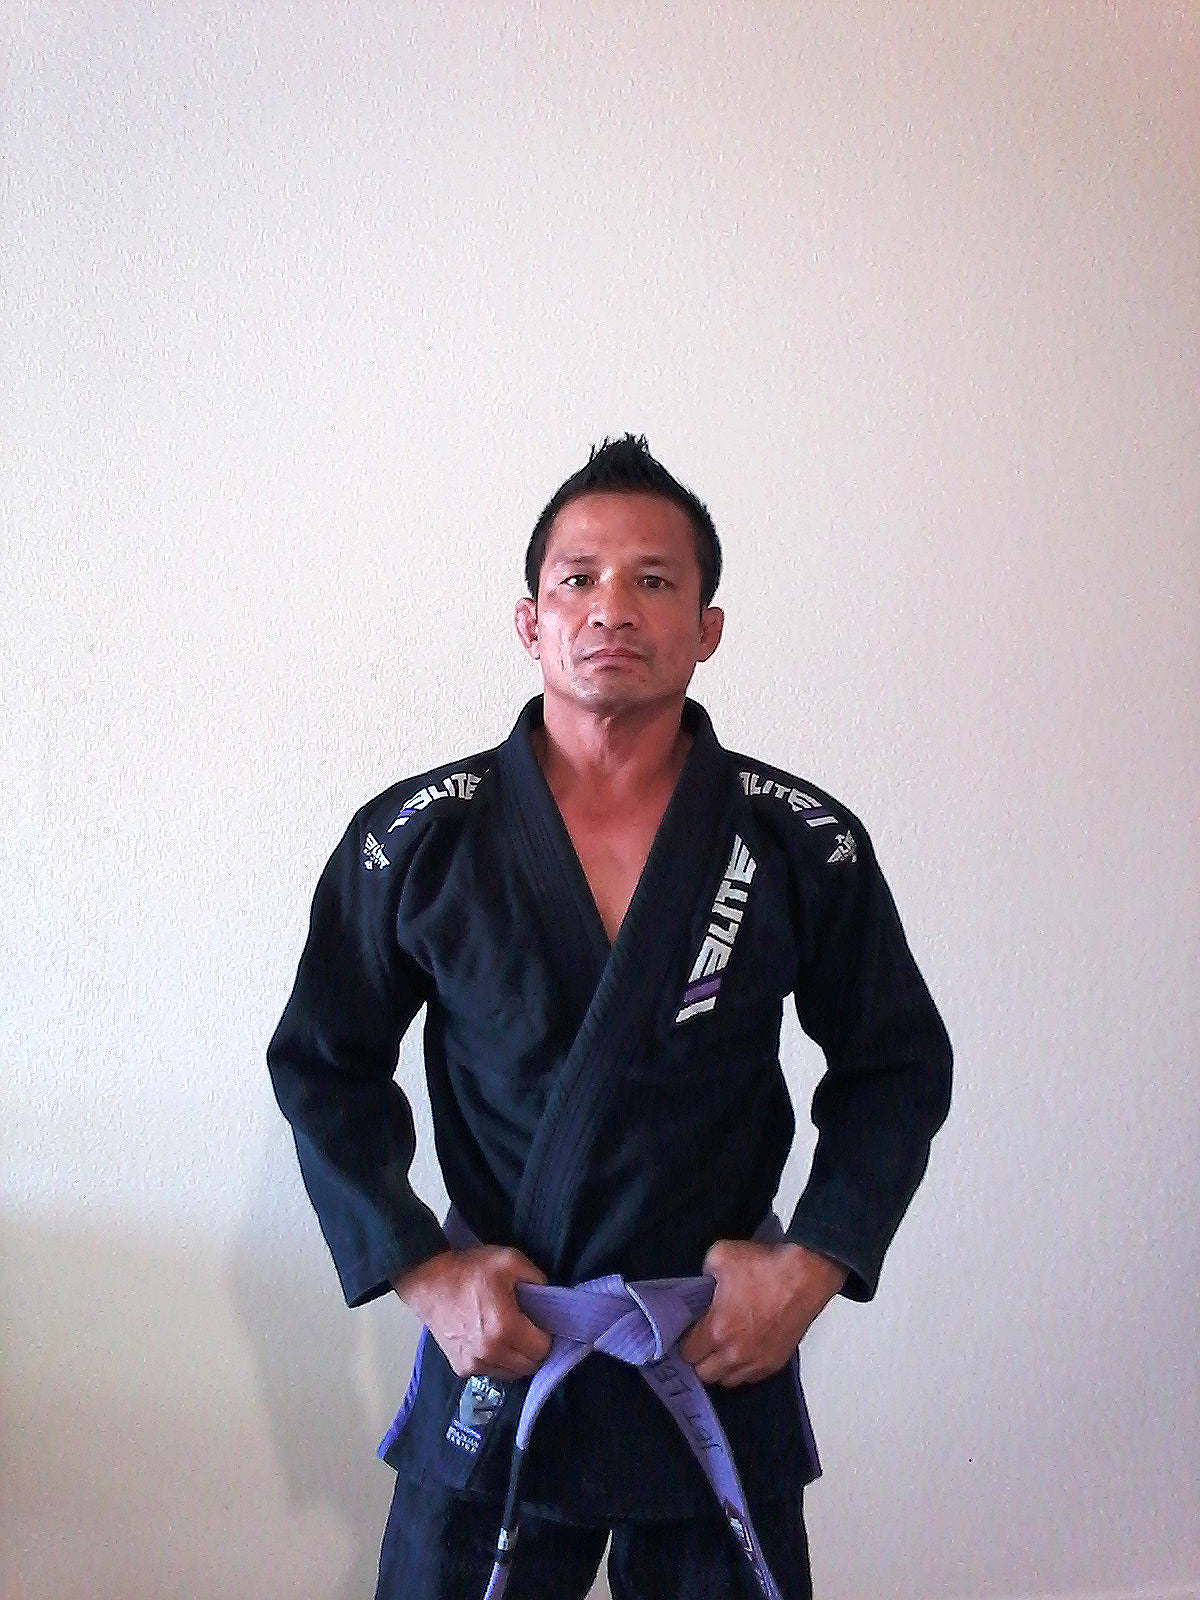 Elite Sports Team Elite Bjj Fighter Jet Lee  Image1